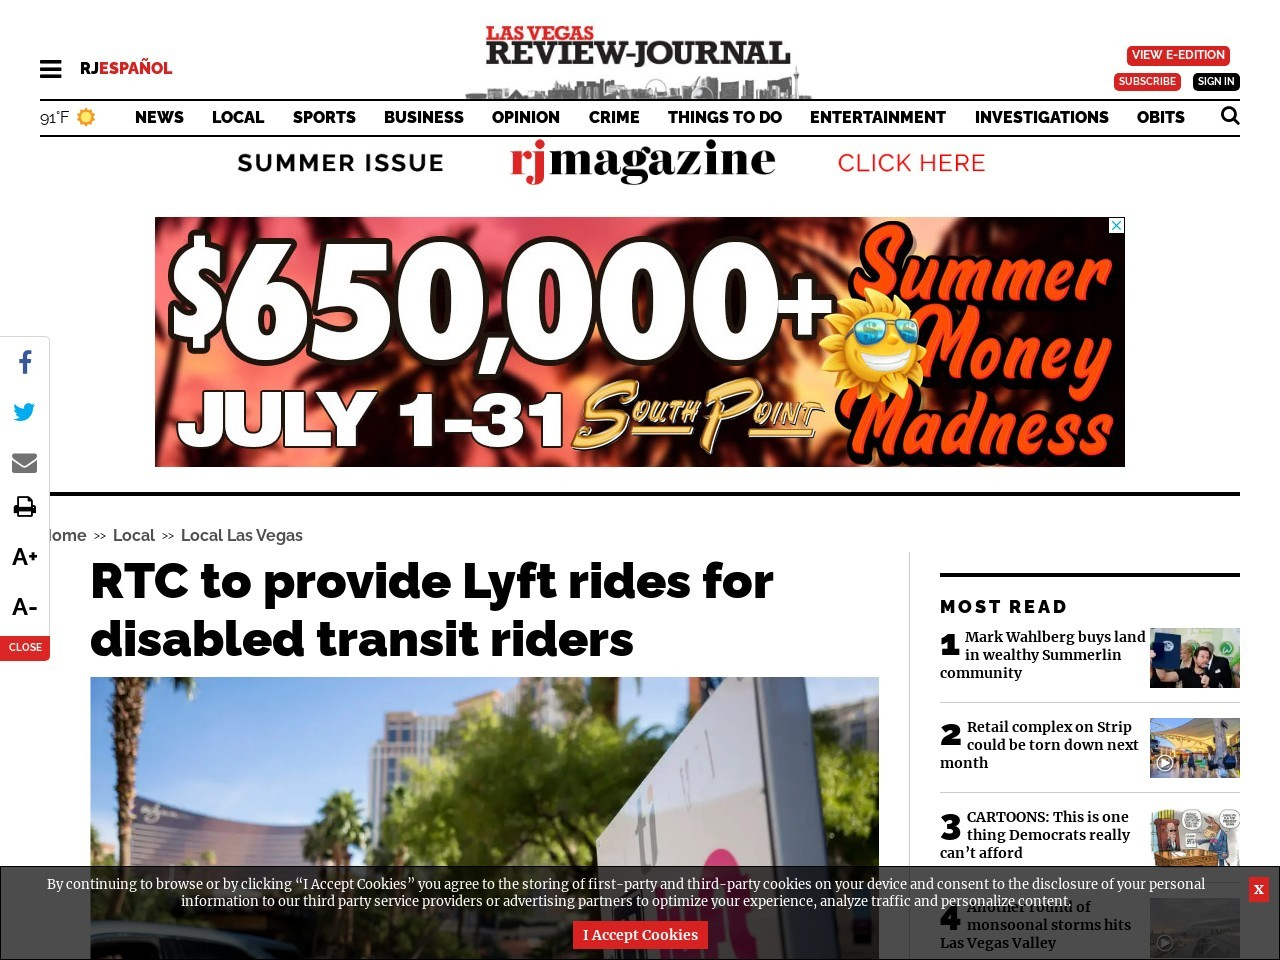 RTC to provide Lyft rides for disabled transit riders